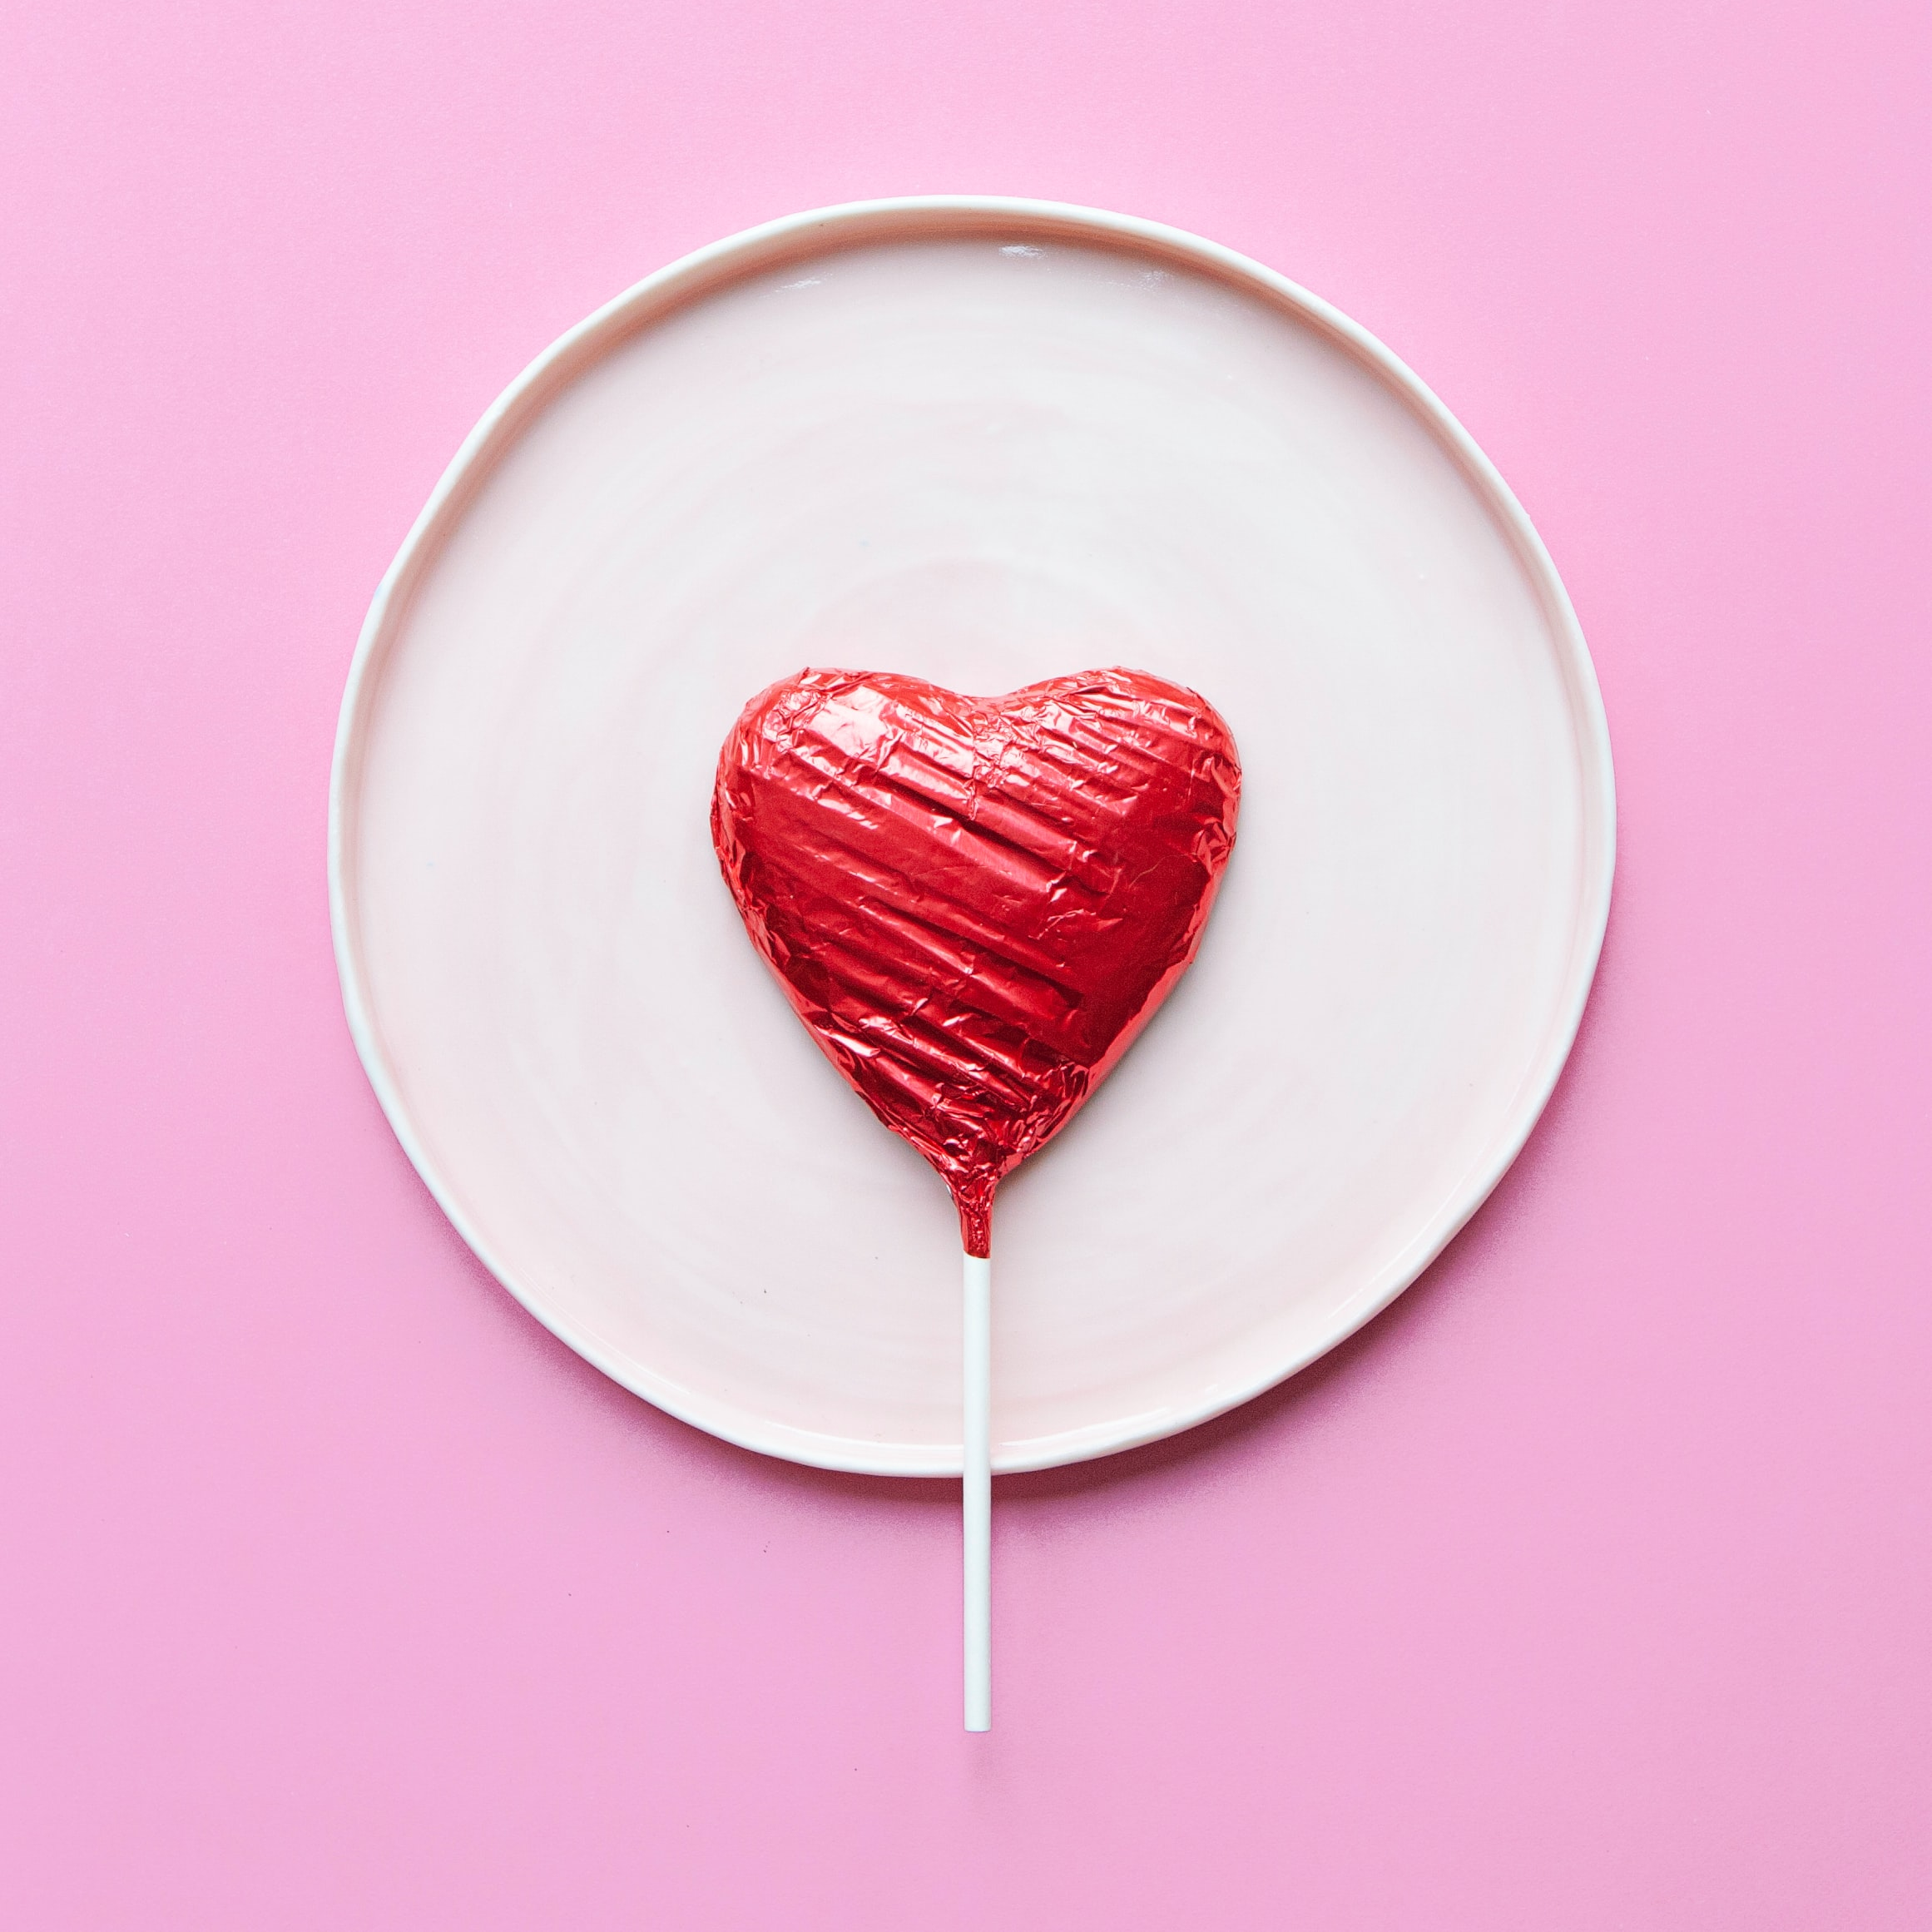 chocolate hearty lolly on plate